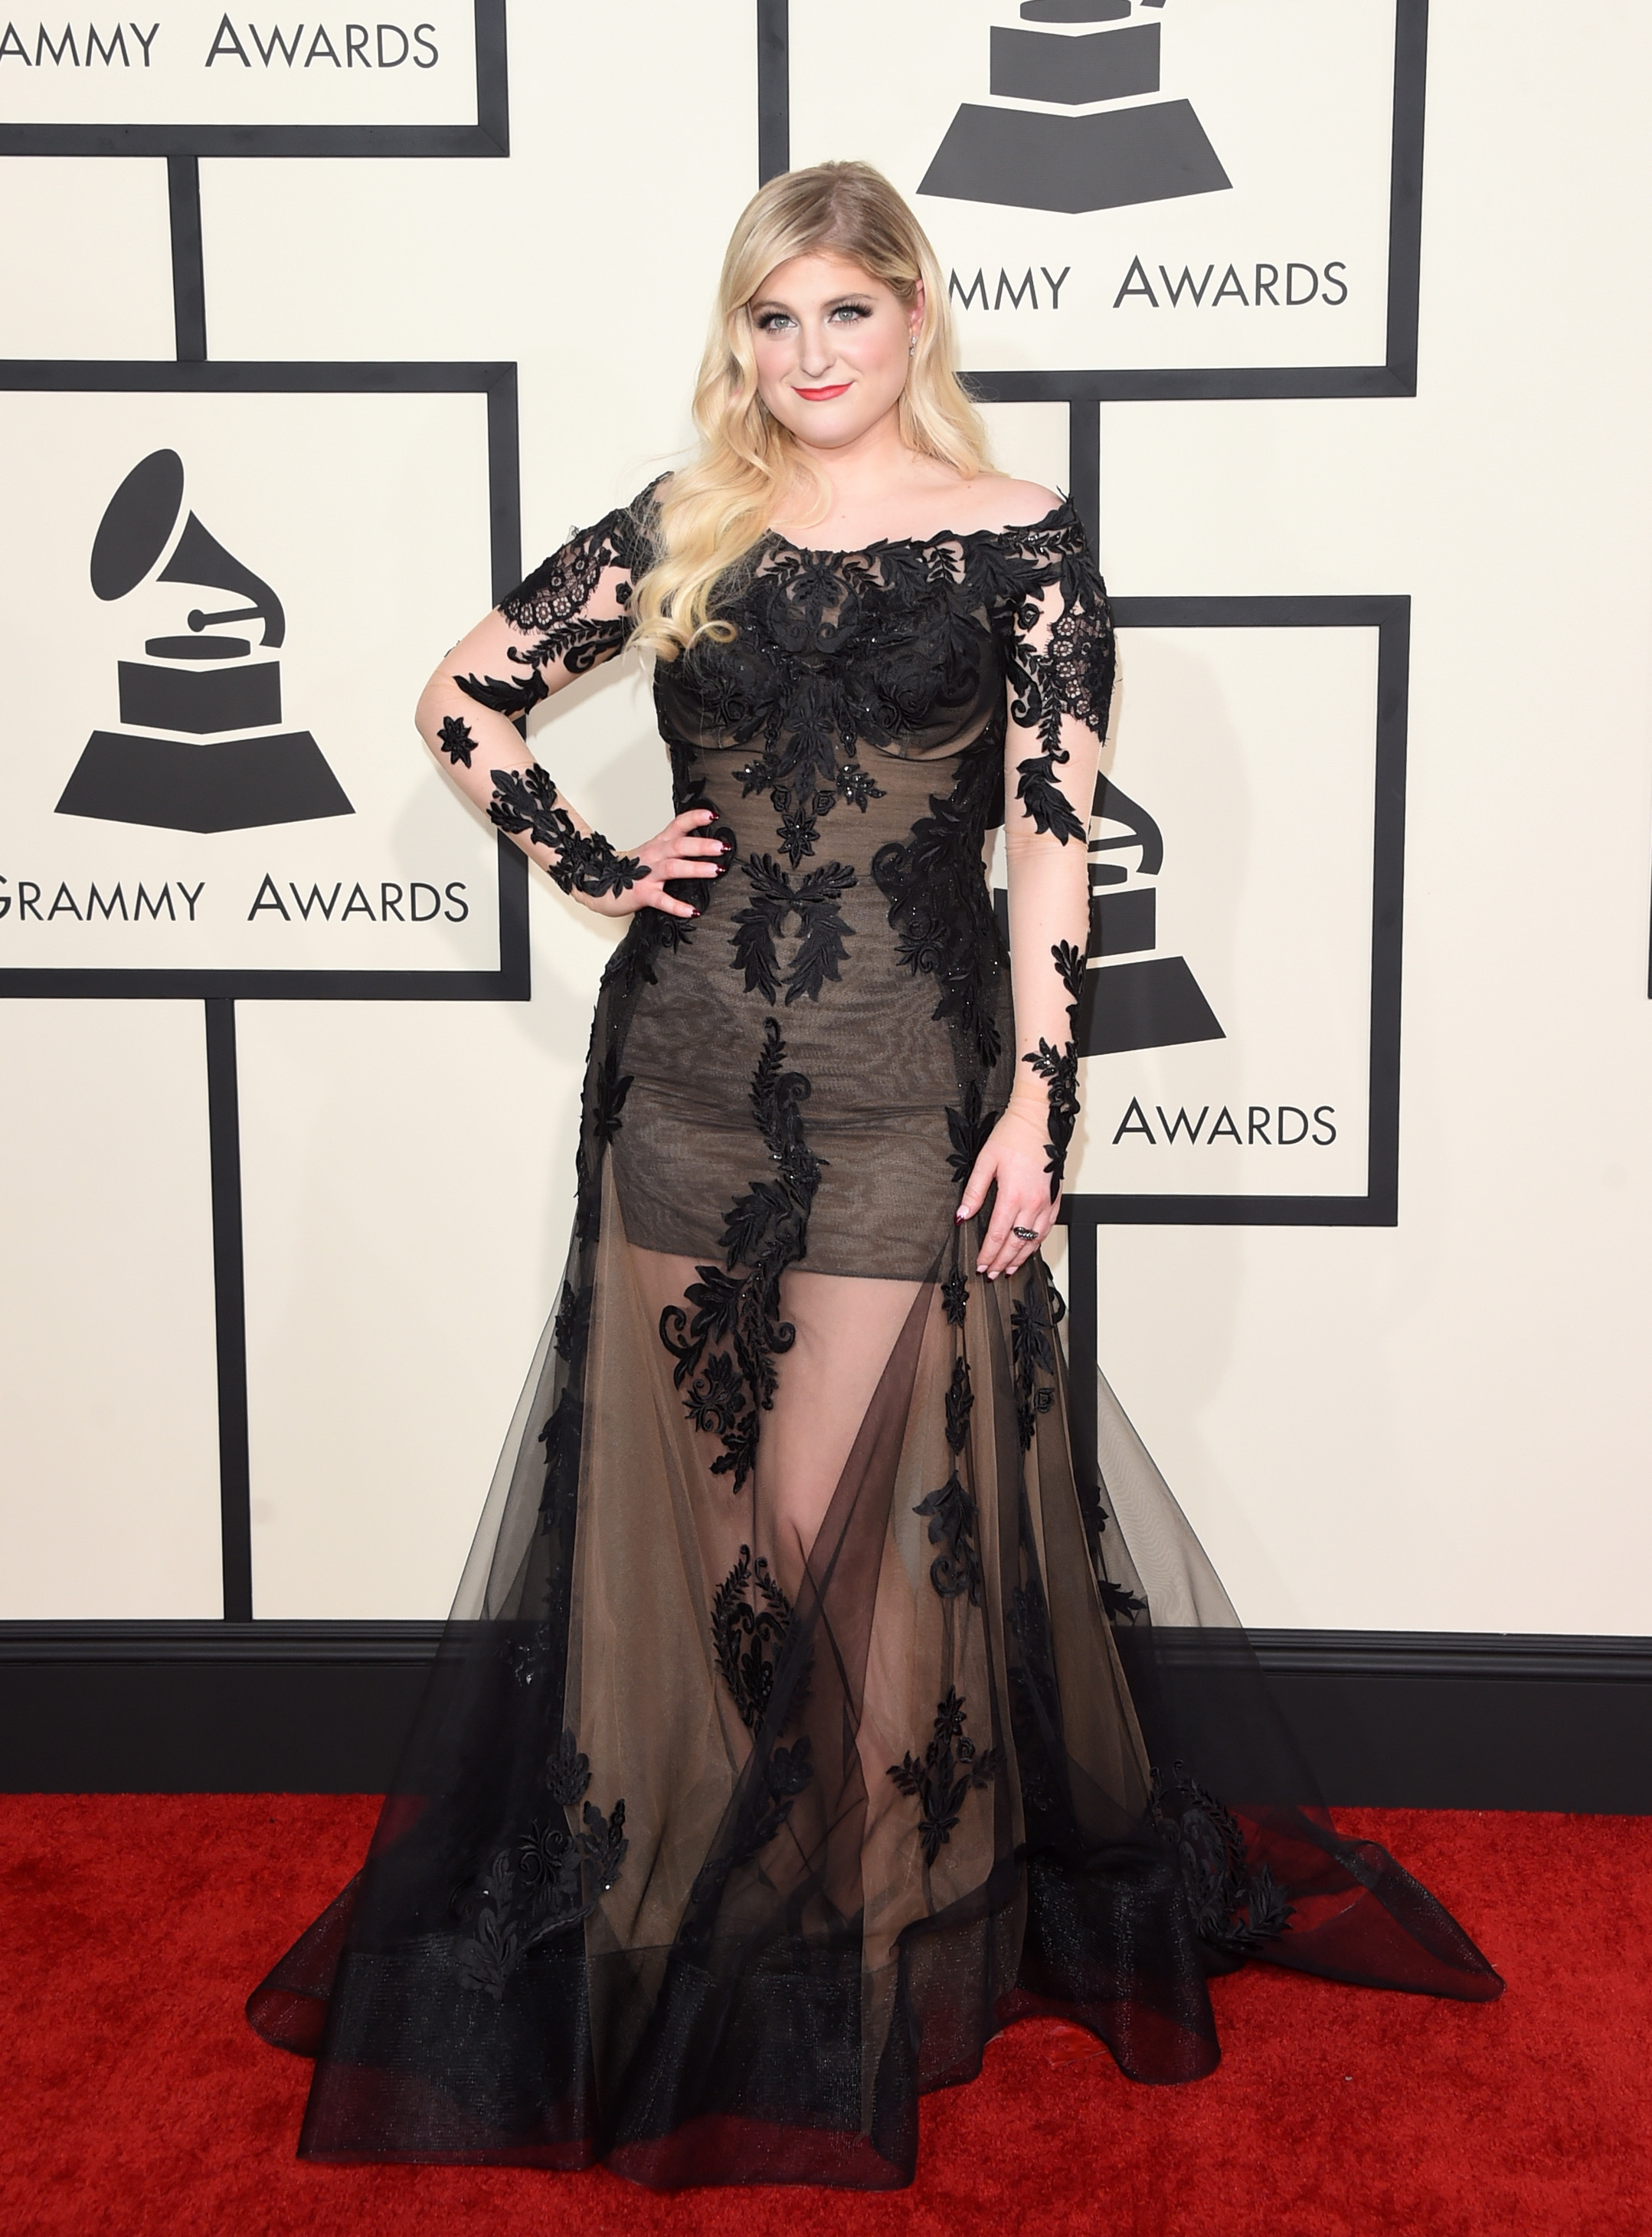 What Meghan Trainor Taught Girls With Her Grammys Dress